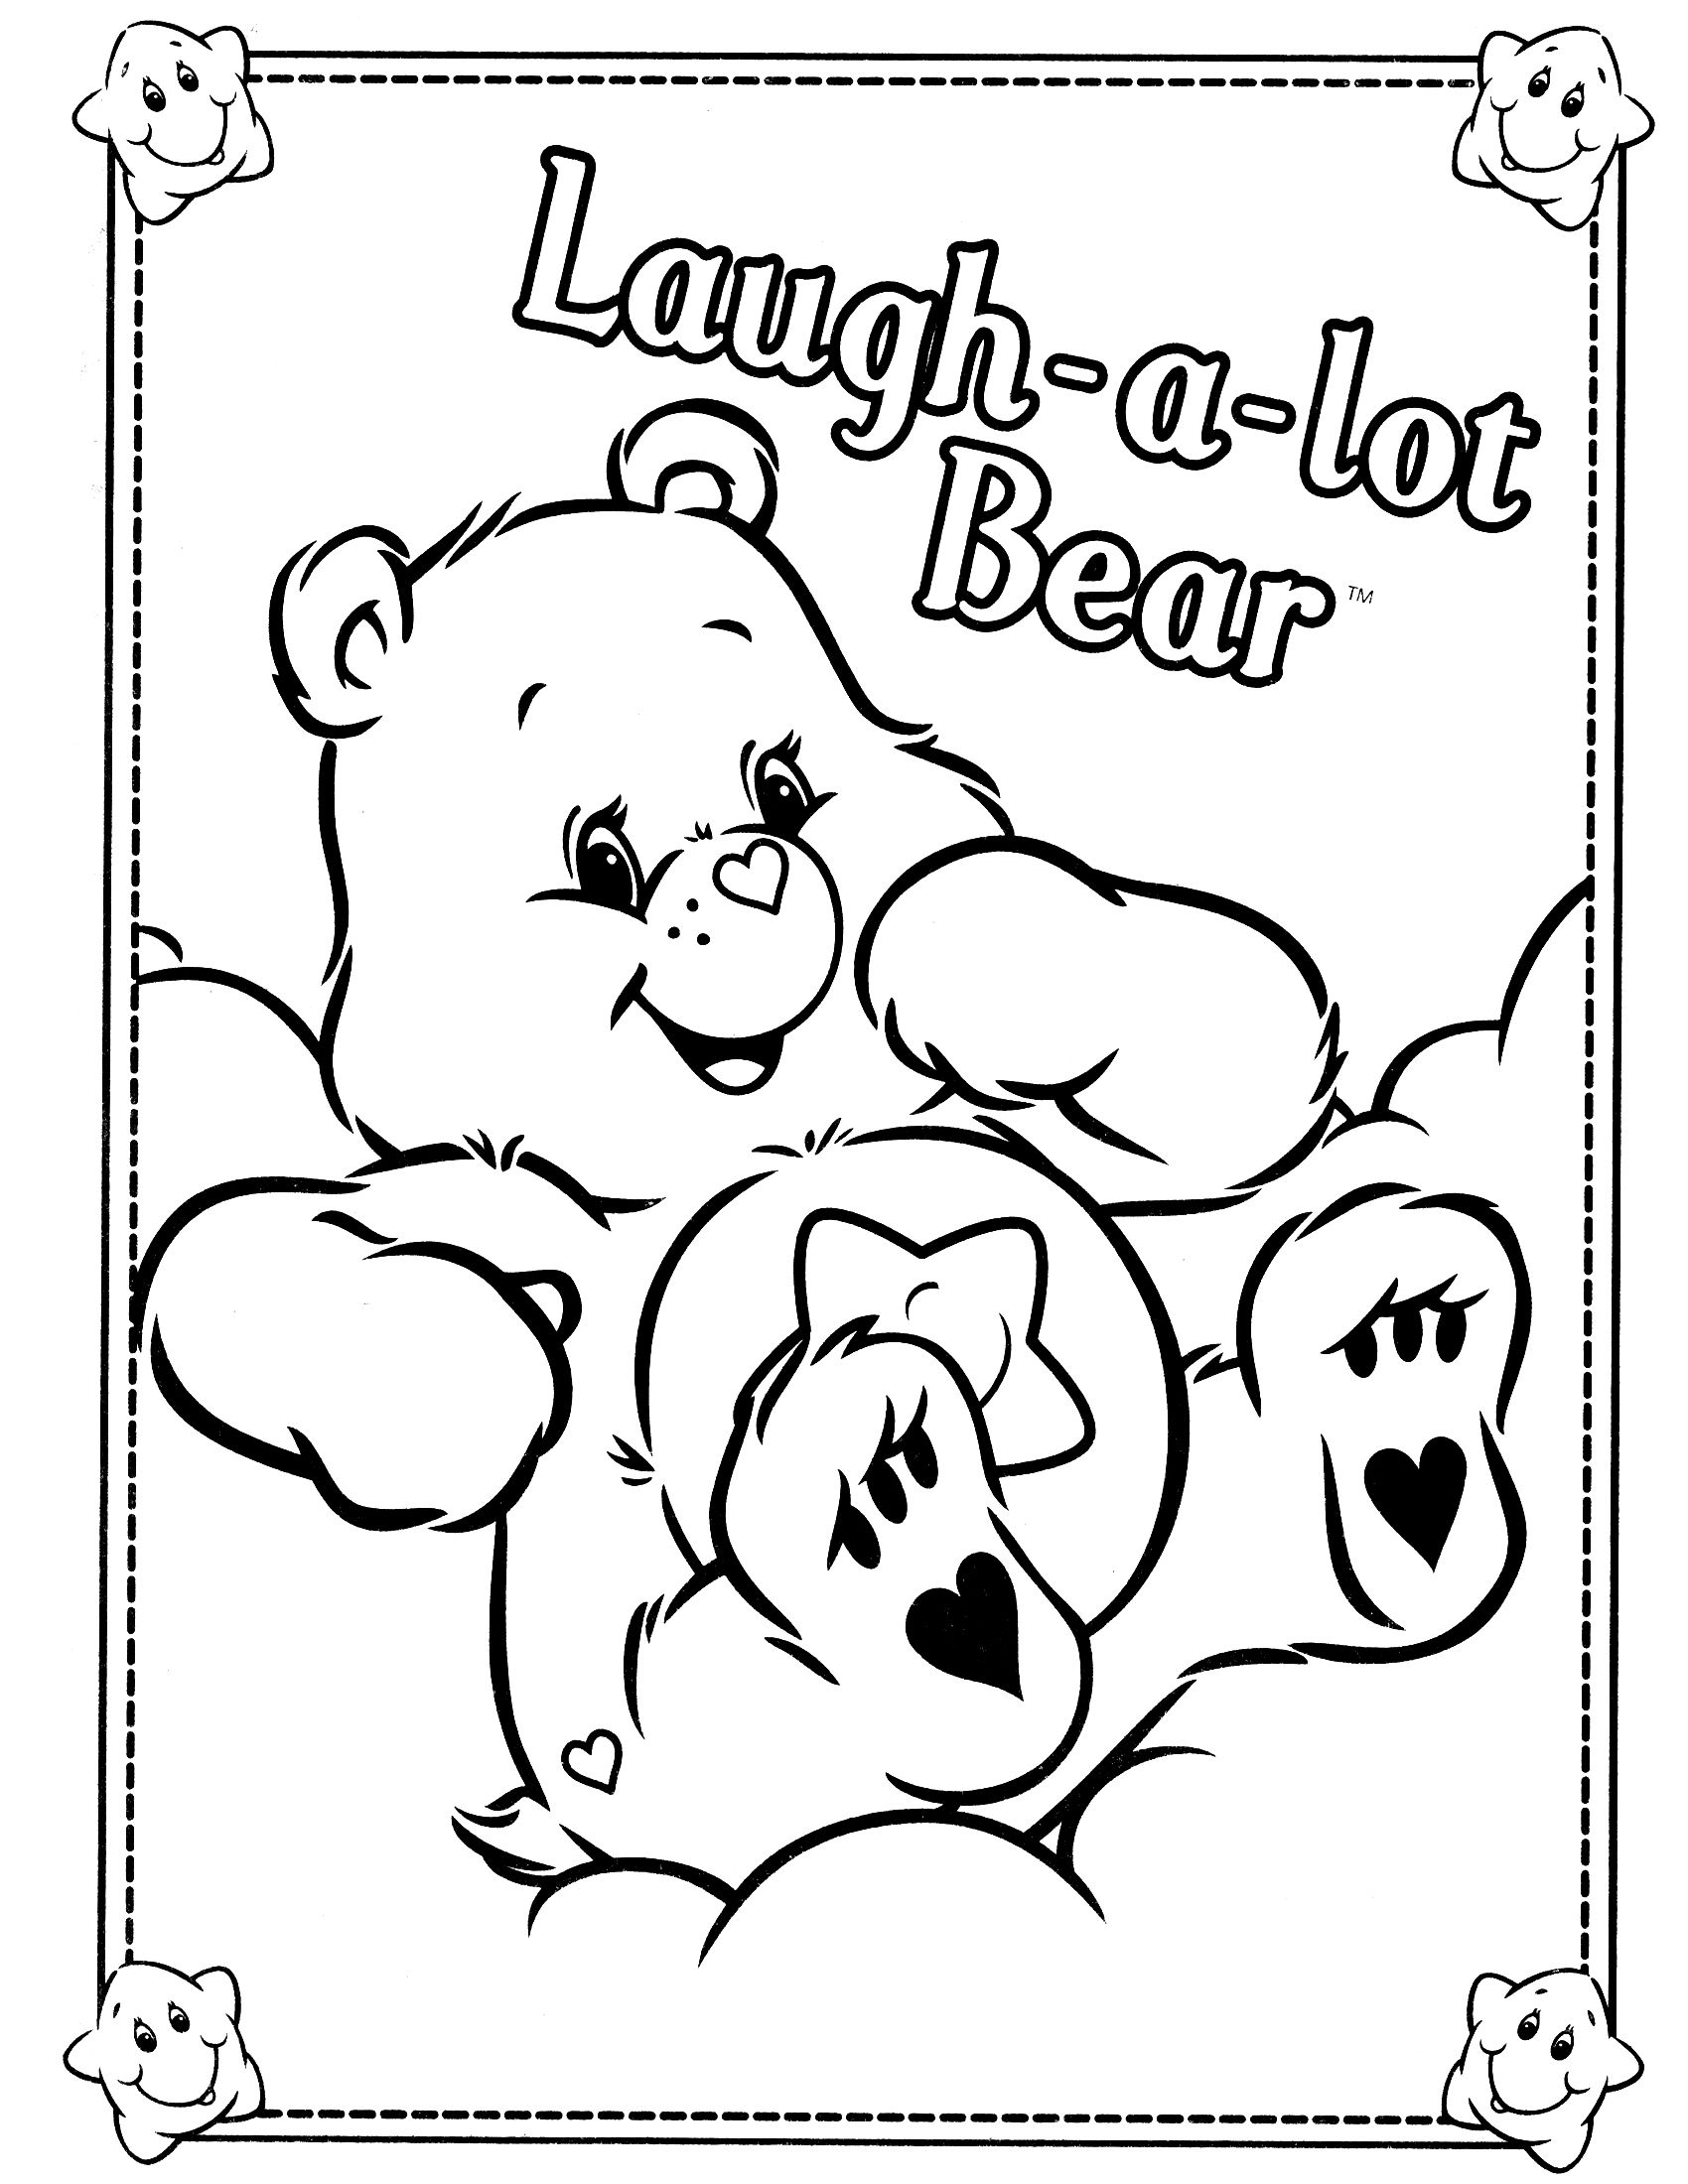 care bear coloring pages christmas - photo#37